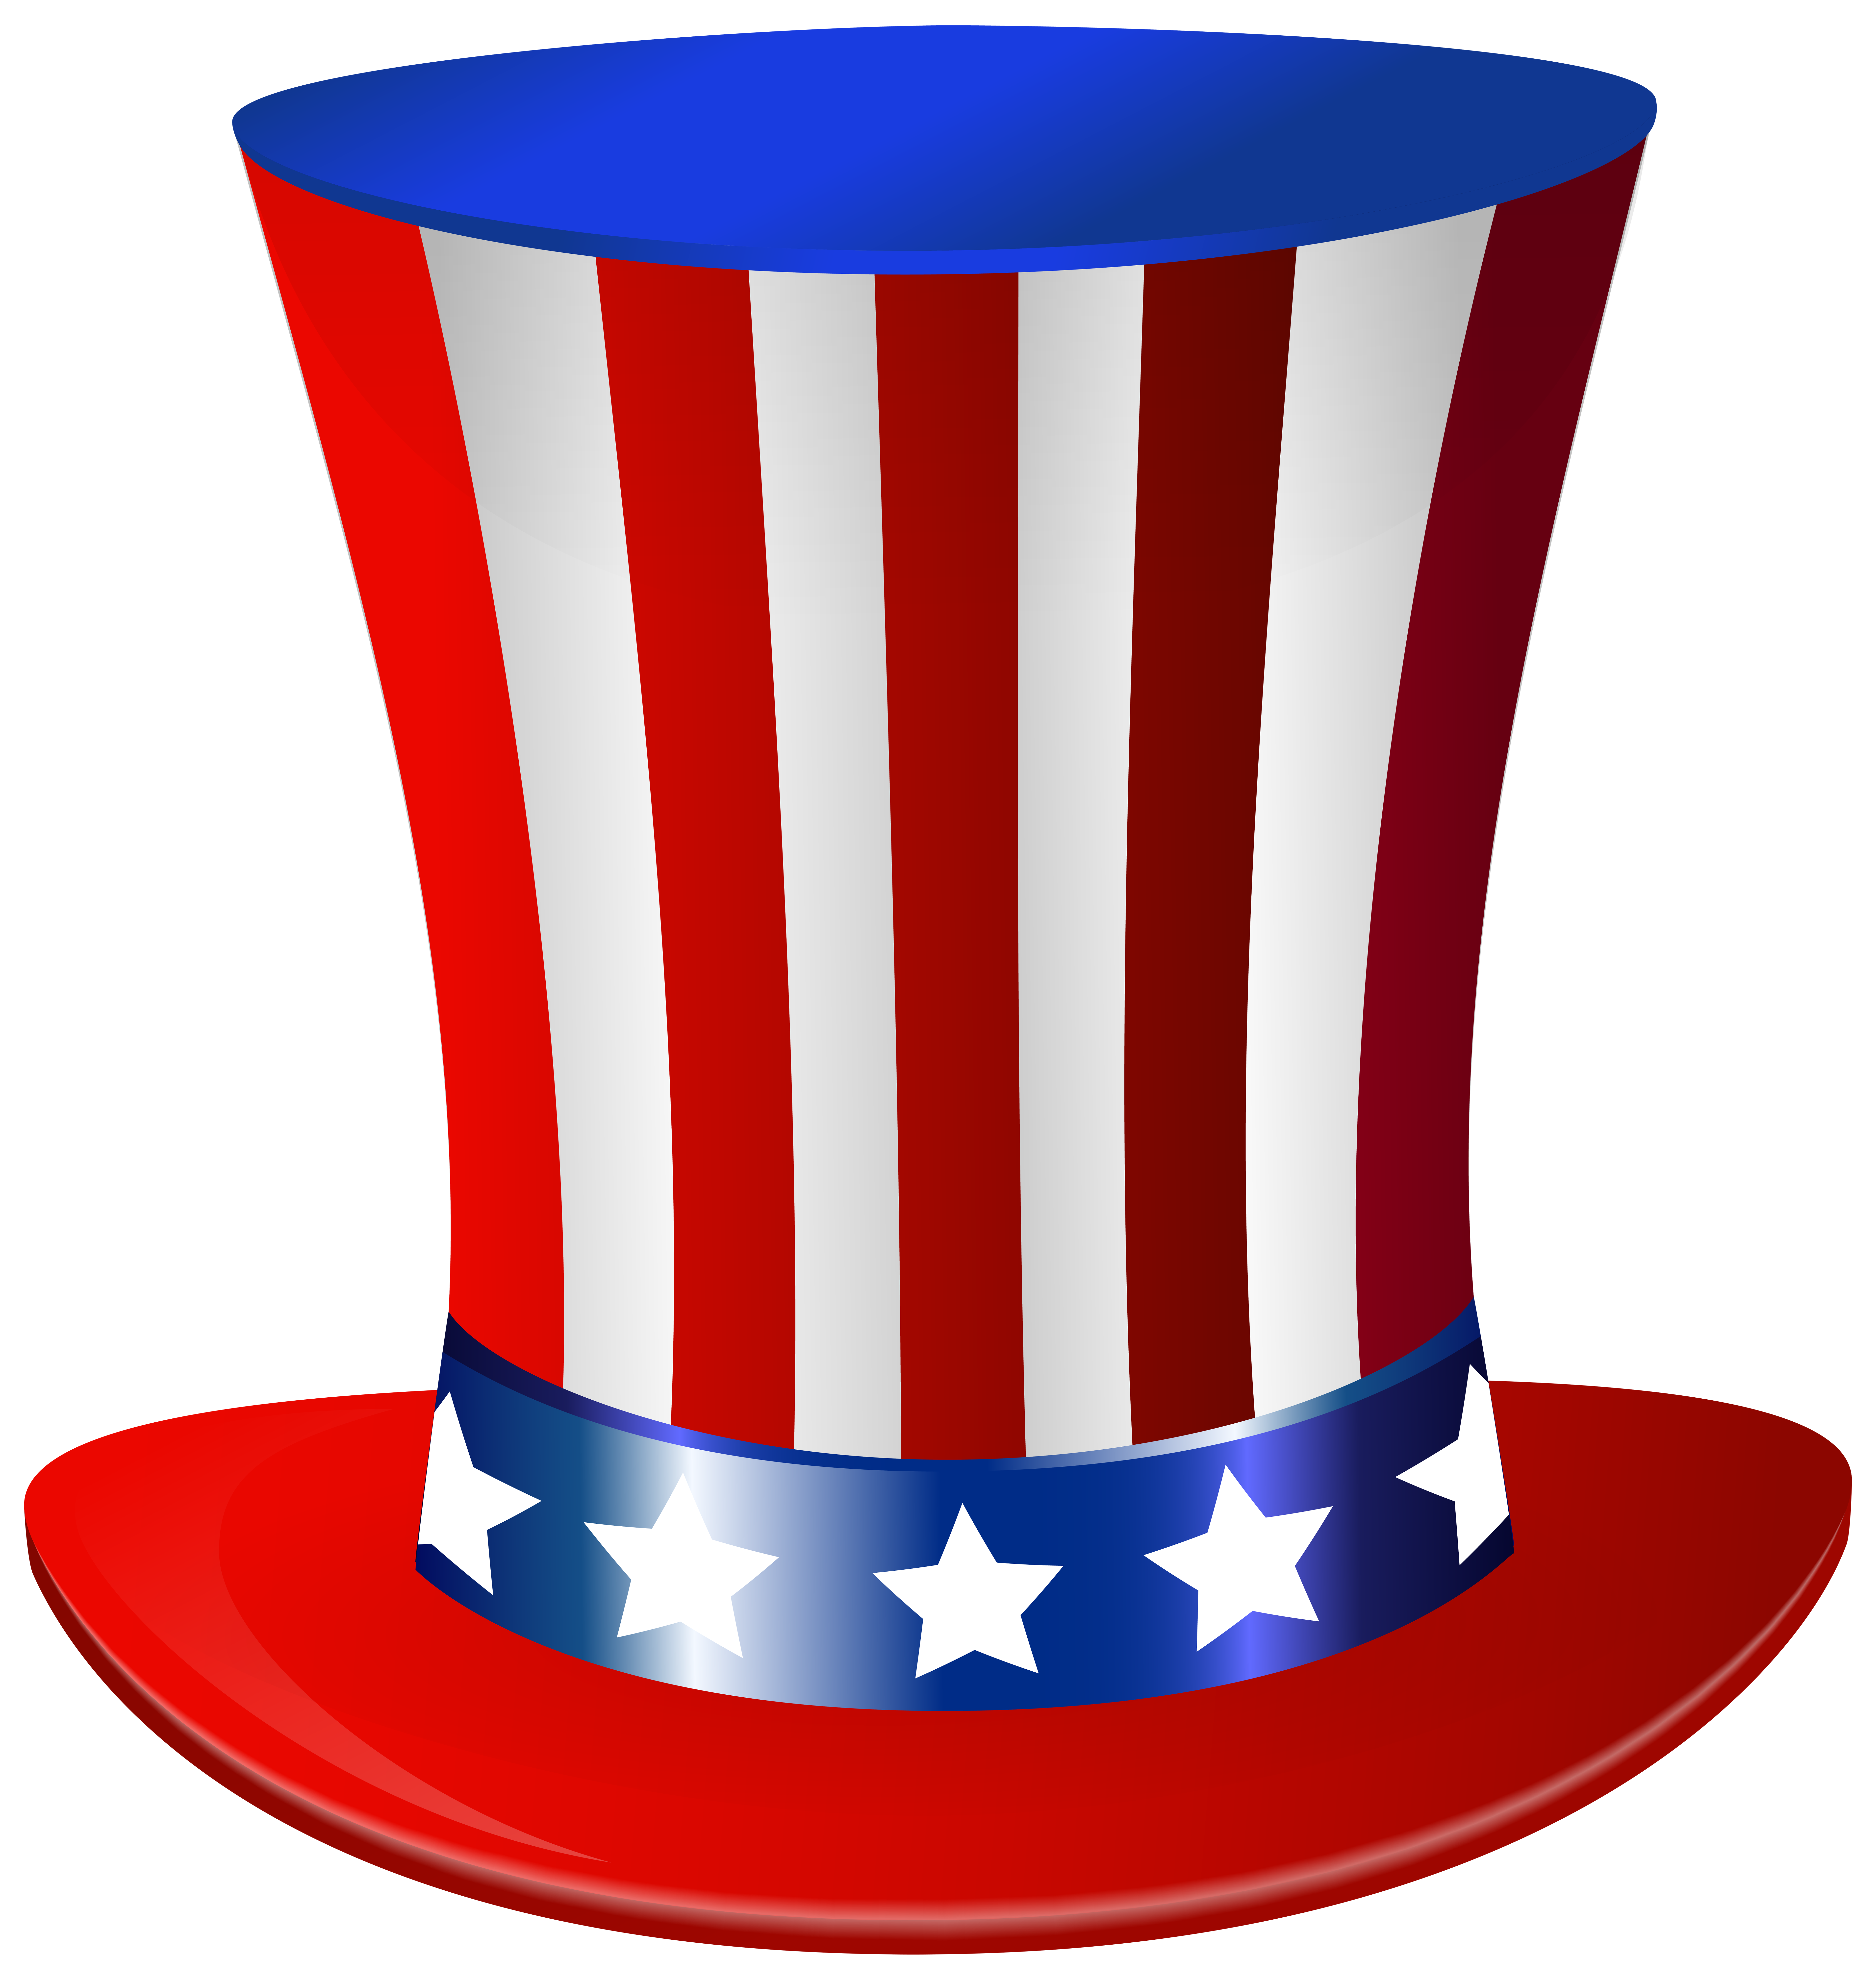 Uncle sam hat png. Clip art image gallery